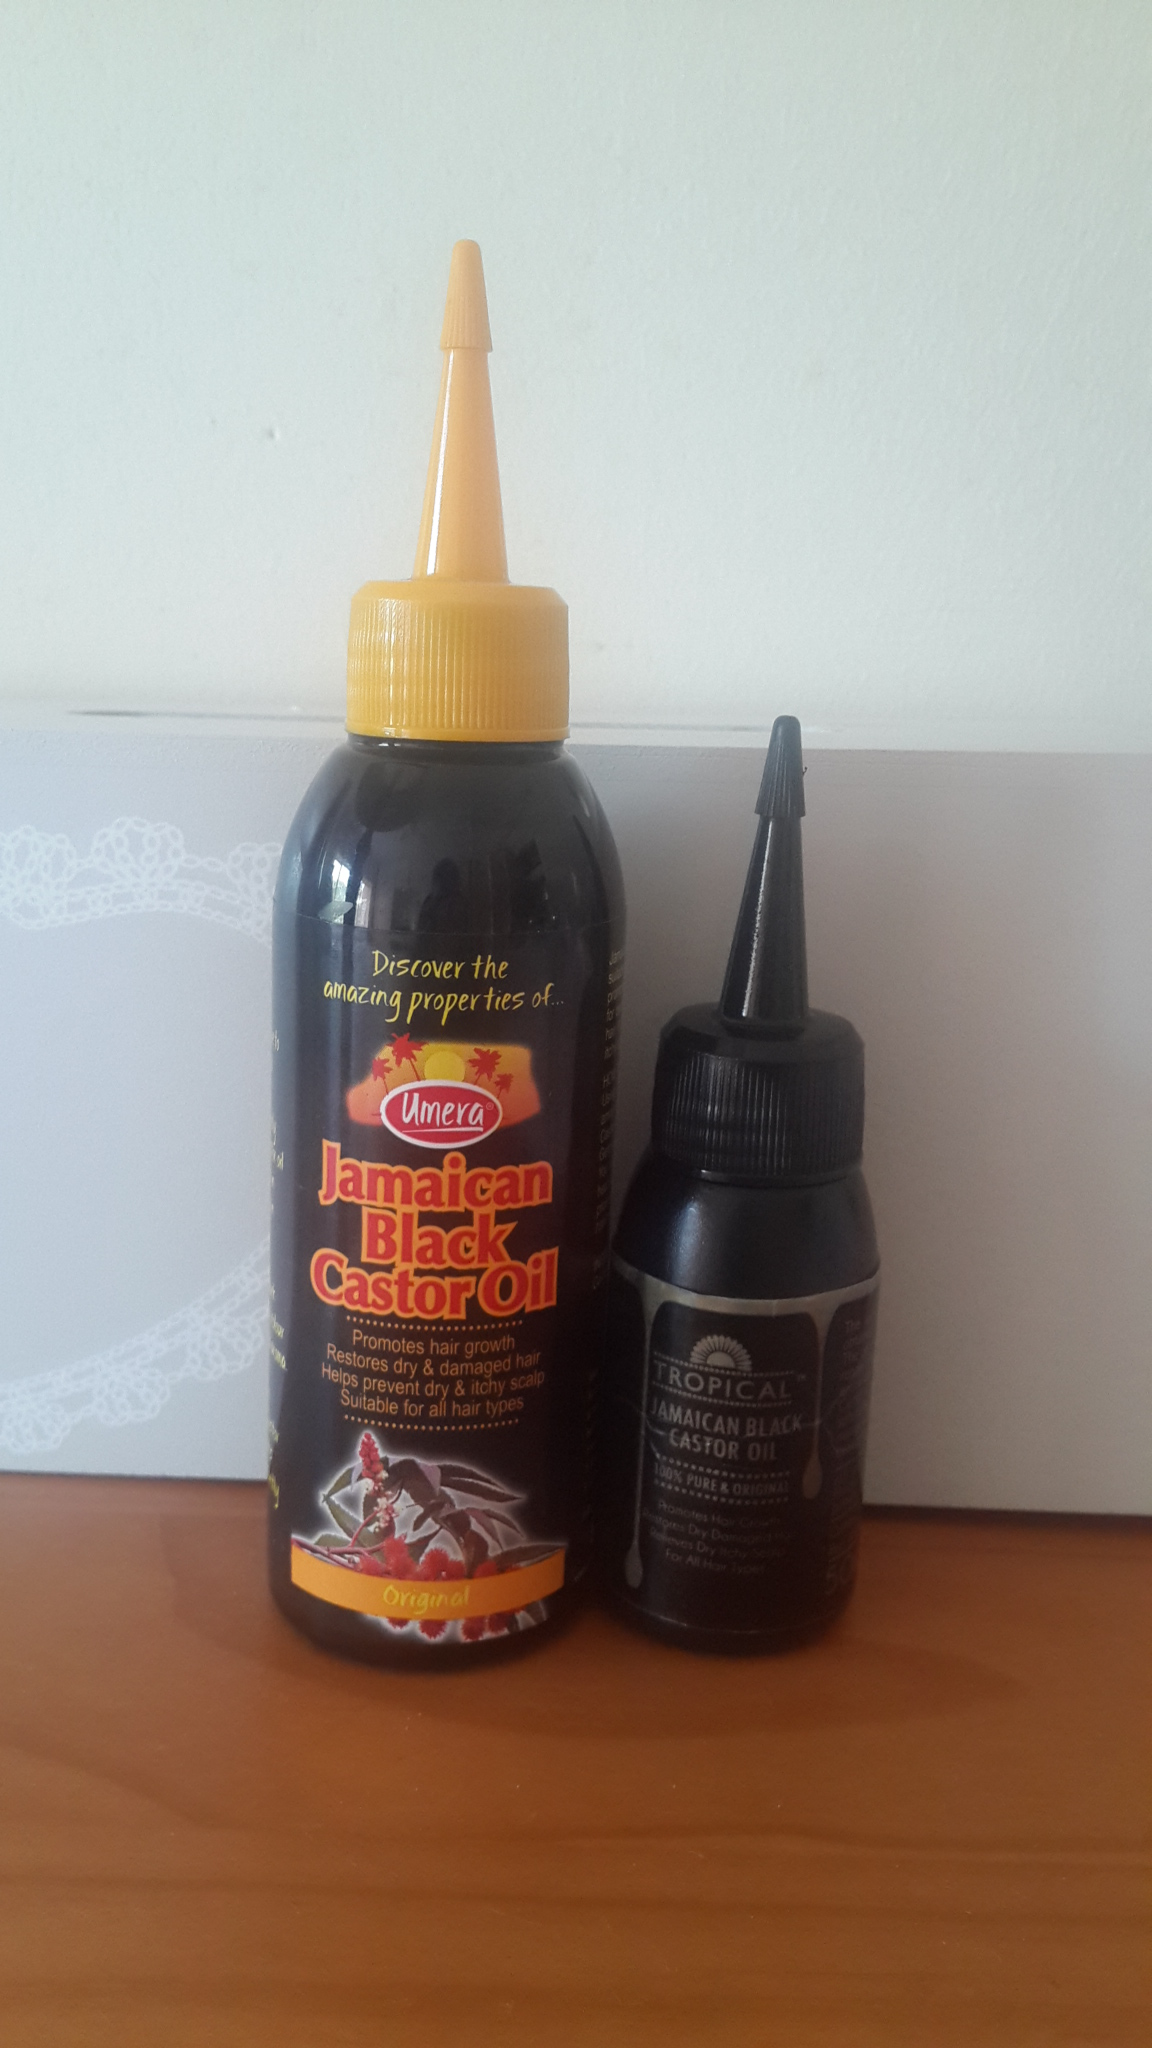 Mzansi Jamaican Black Castor Oil Lungi S Healthy Hair